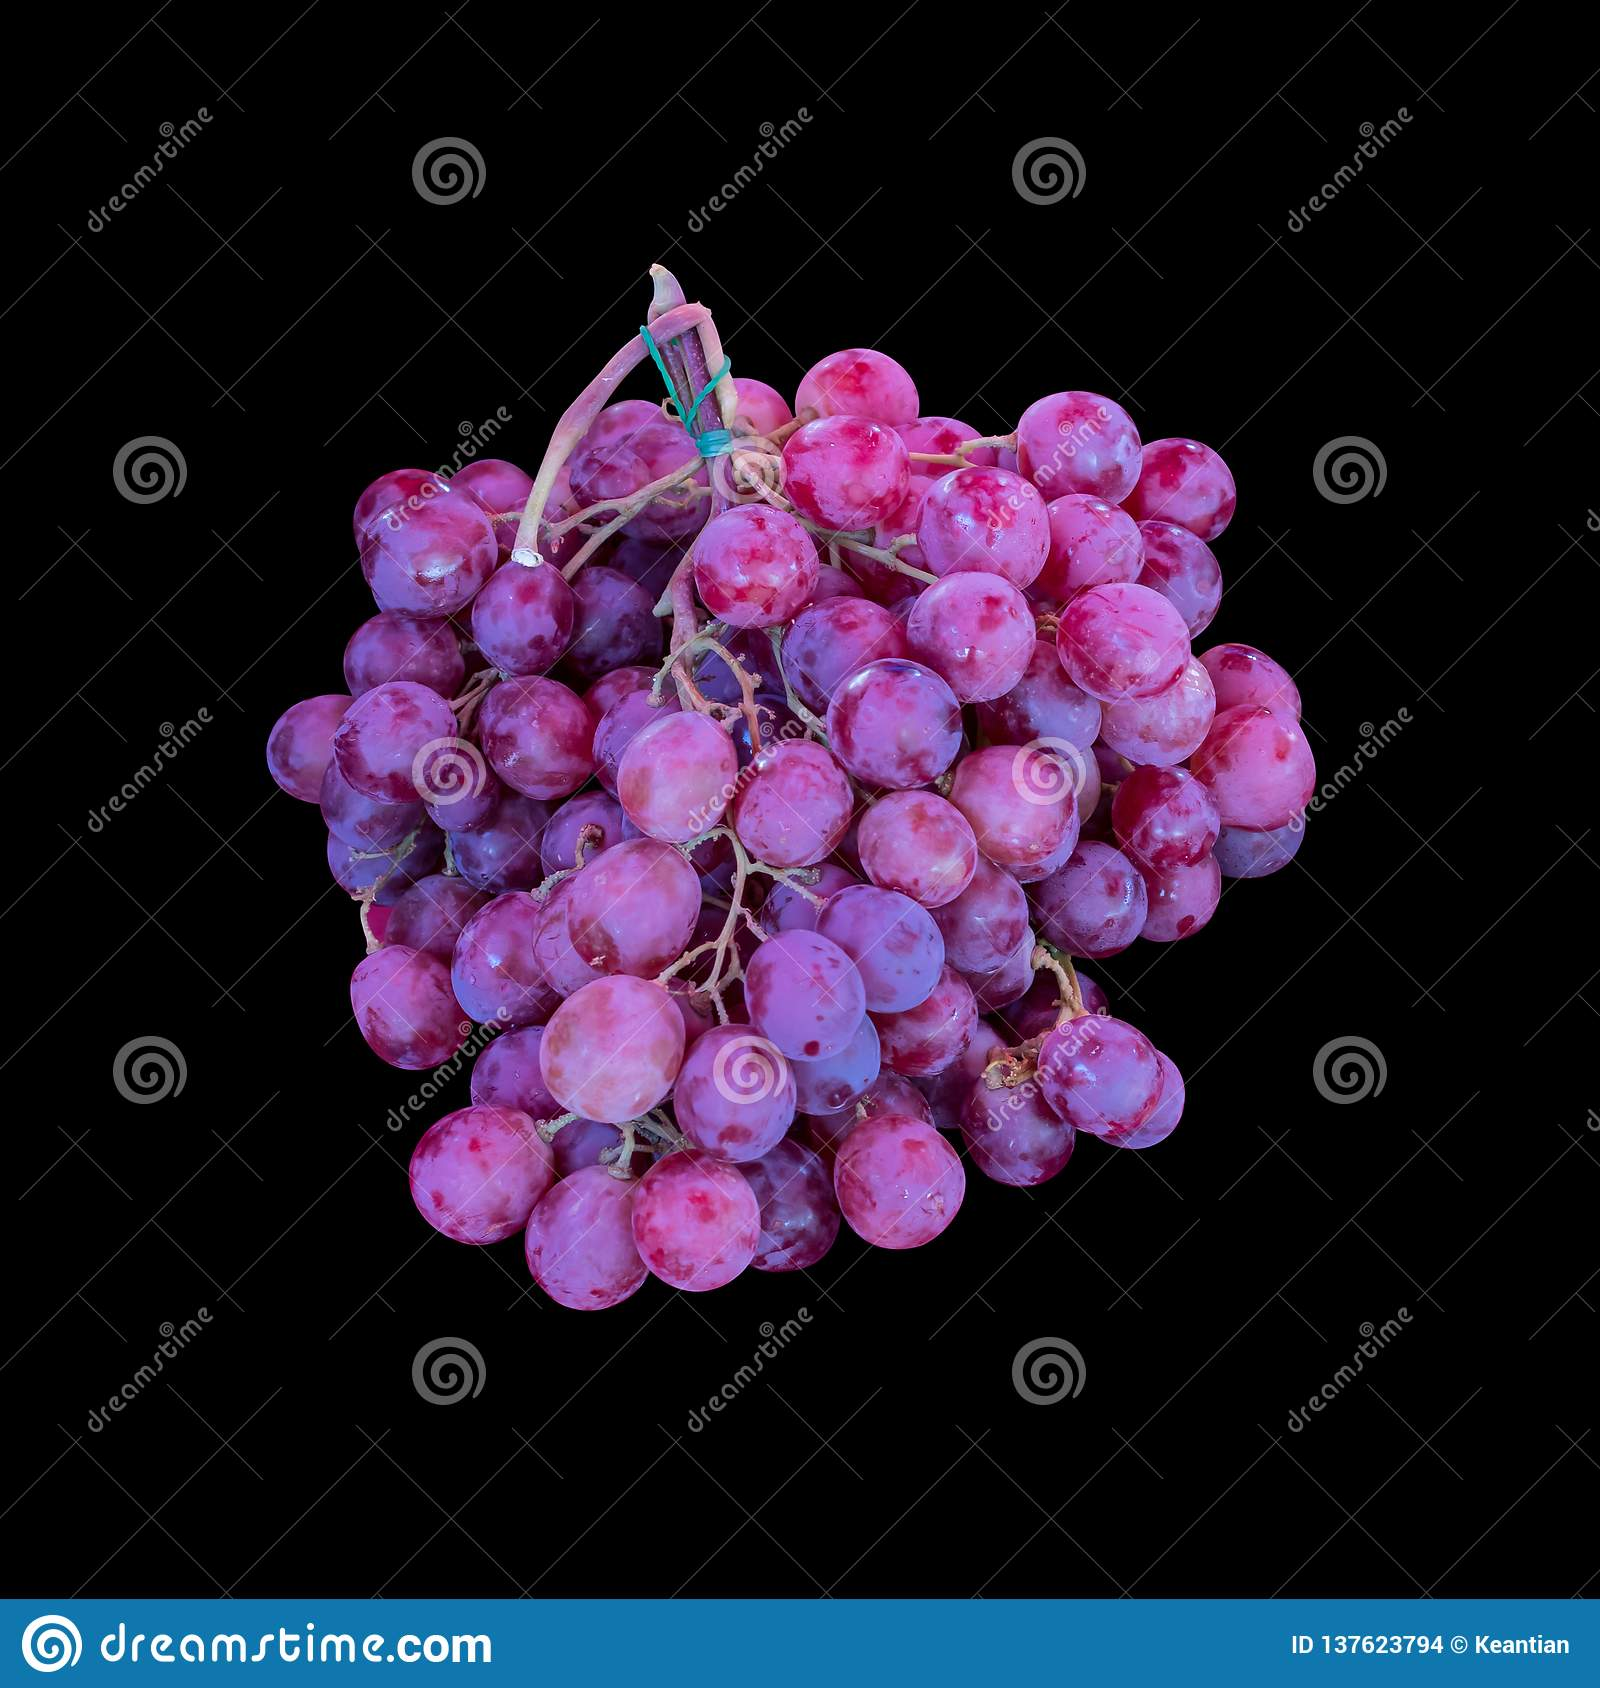 black grapes nutrition